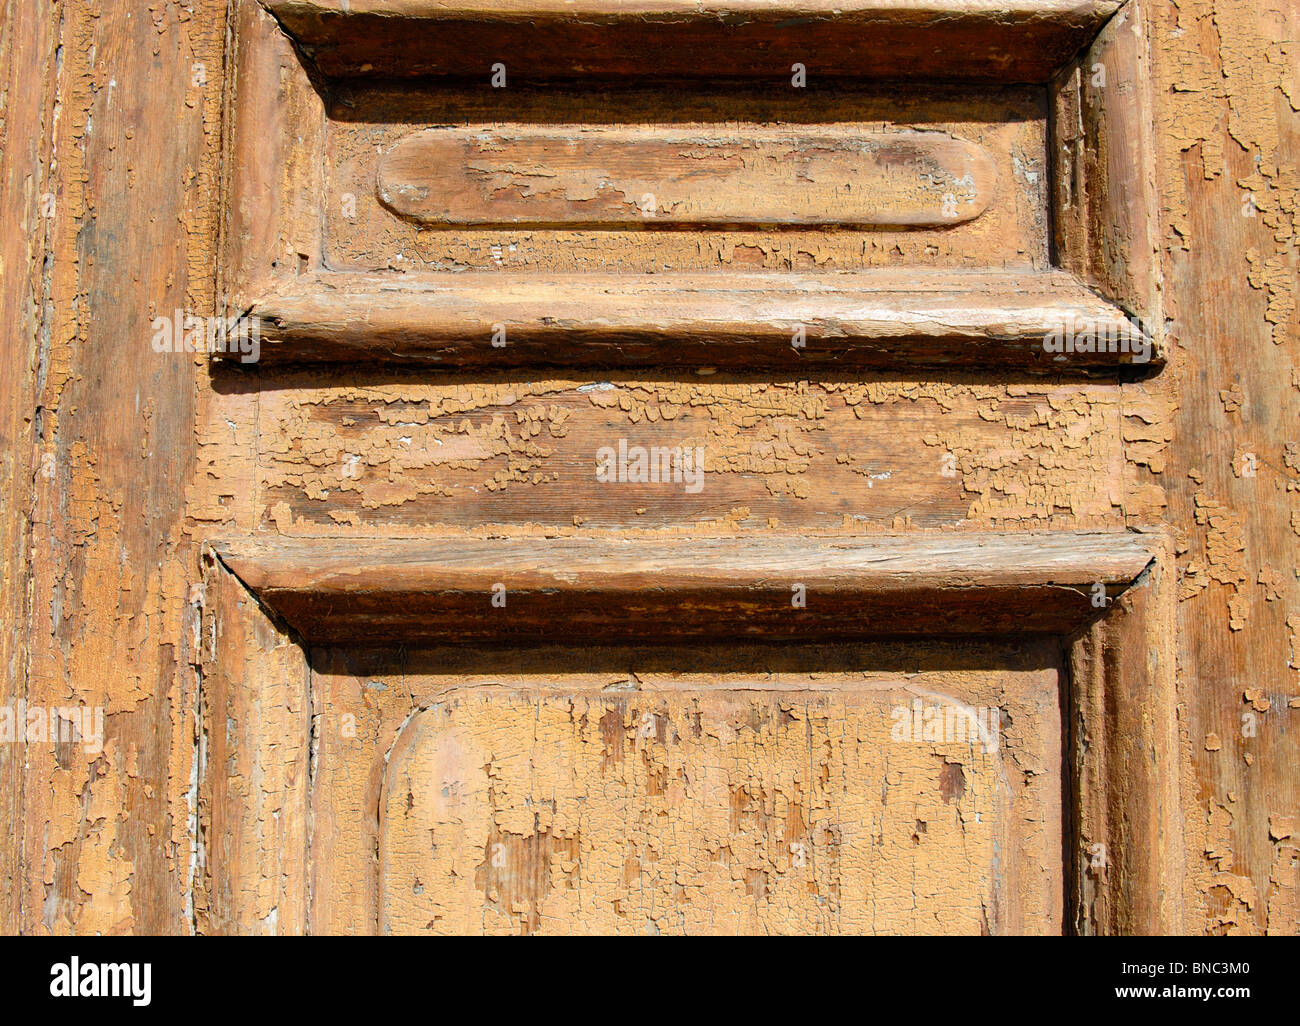 OLD WOODEN DOOR - Stock Image